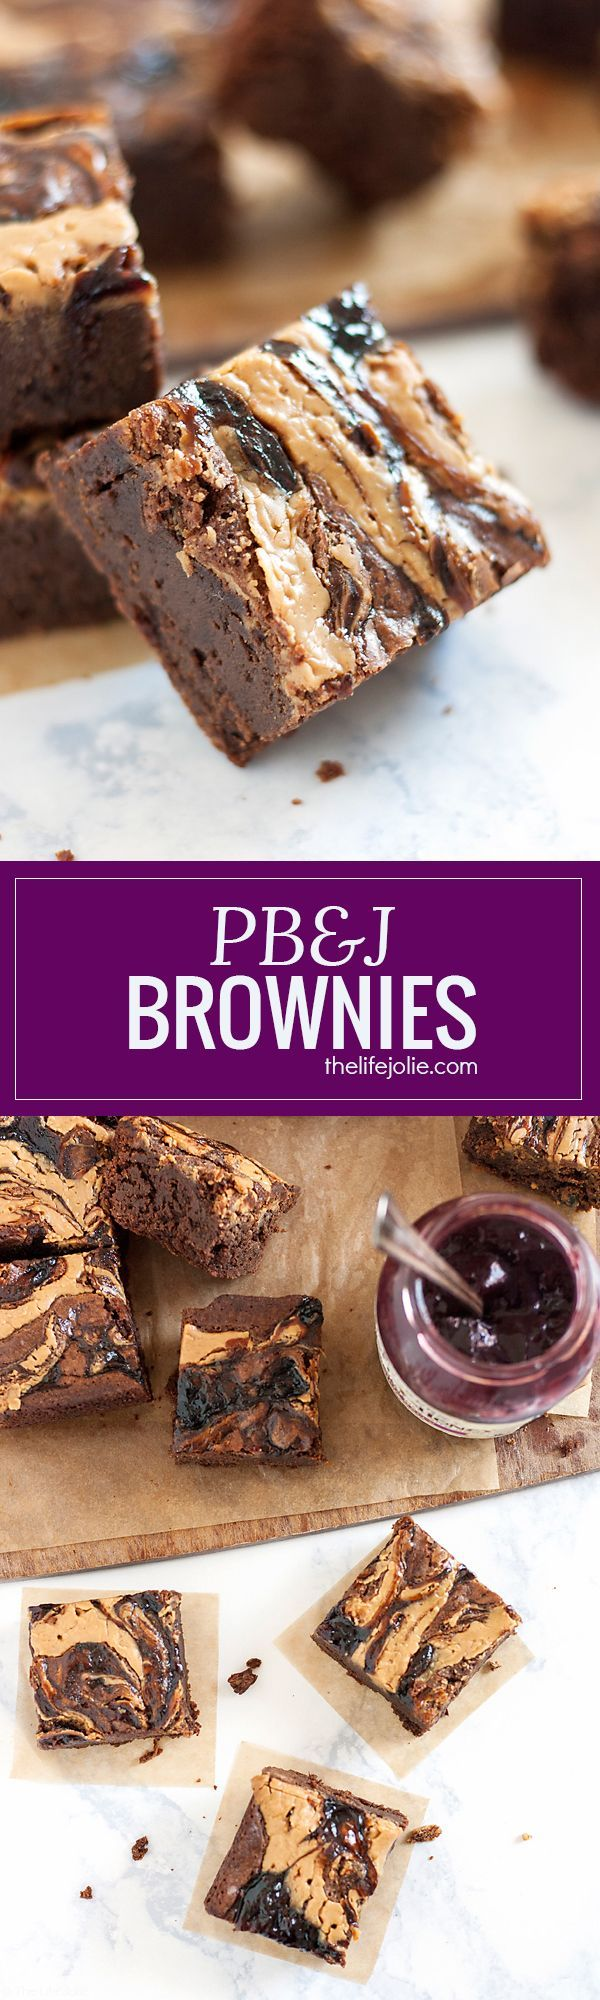 These homemade PB&J Brownies are an easy and delicious holiday dessert option. Chewy, fudgey chocolate brownies with a swirl of peanut butter and the fruit spread of your choice on top, these are made from scratch and would be great on a Thanksgiving of C